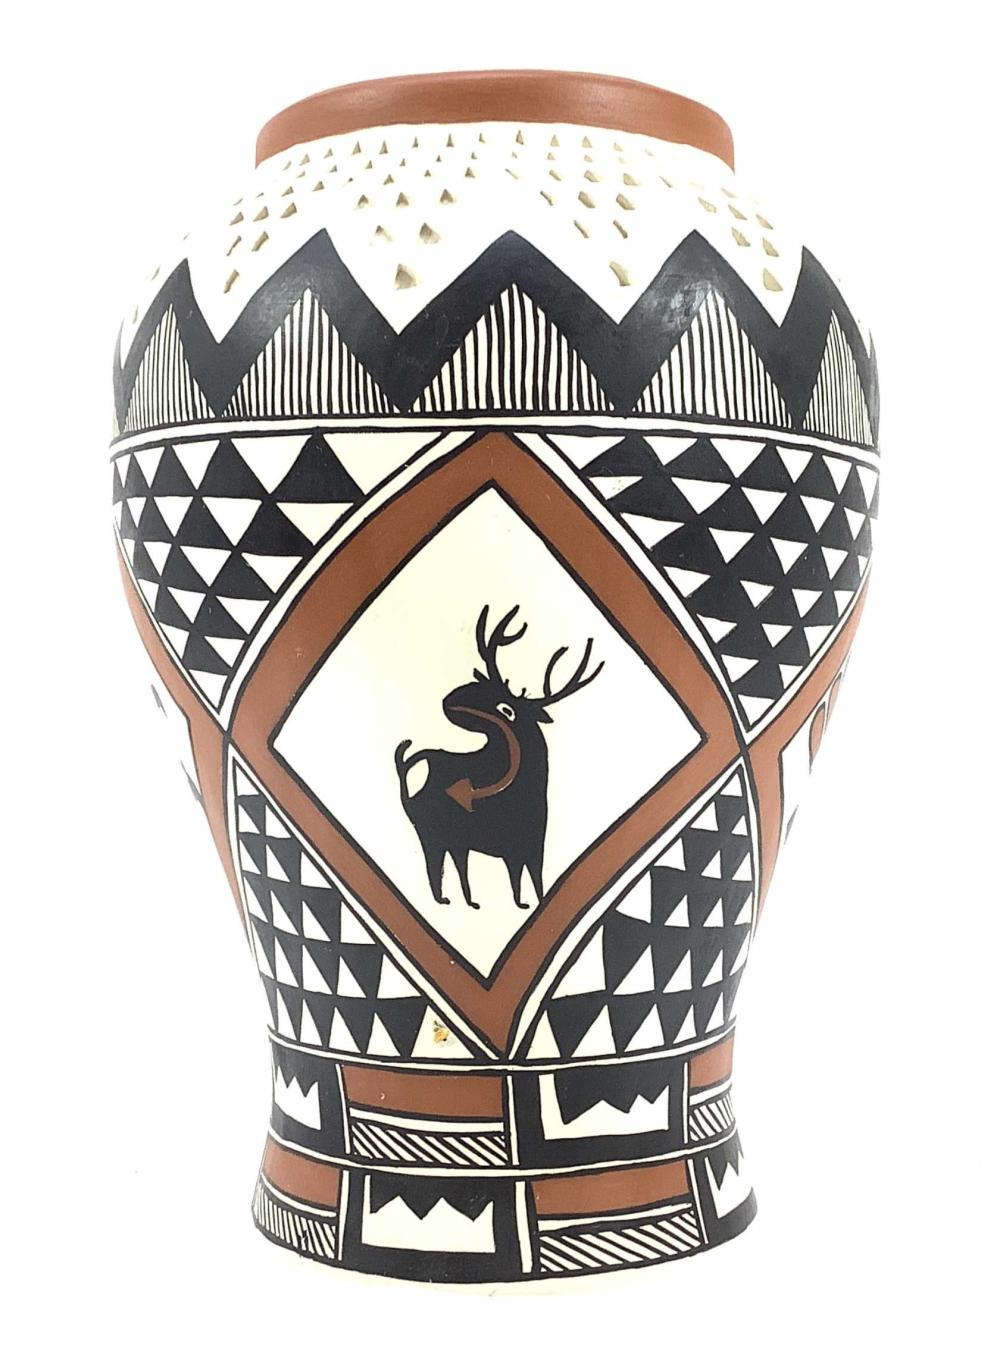 Marie Miller Signed Acoma Pottery Vase